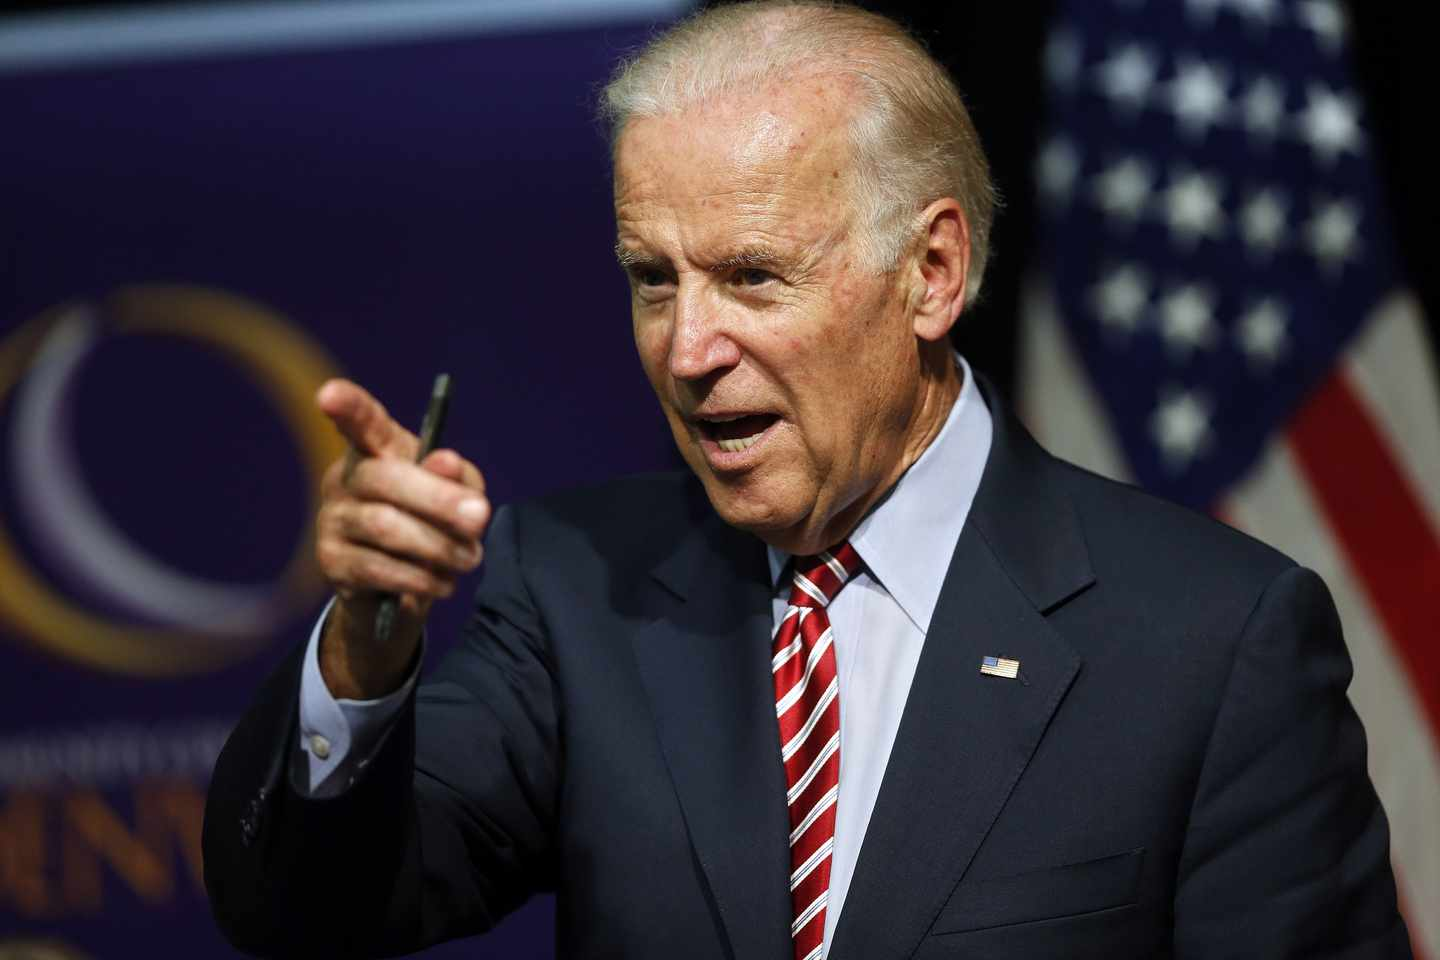 Biden Decried Bain in '12, But Has Taken Execs' Donations in '19